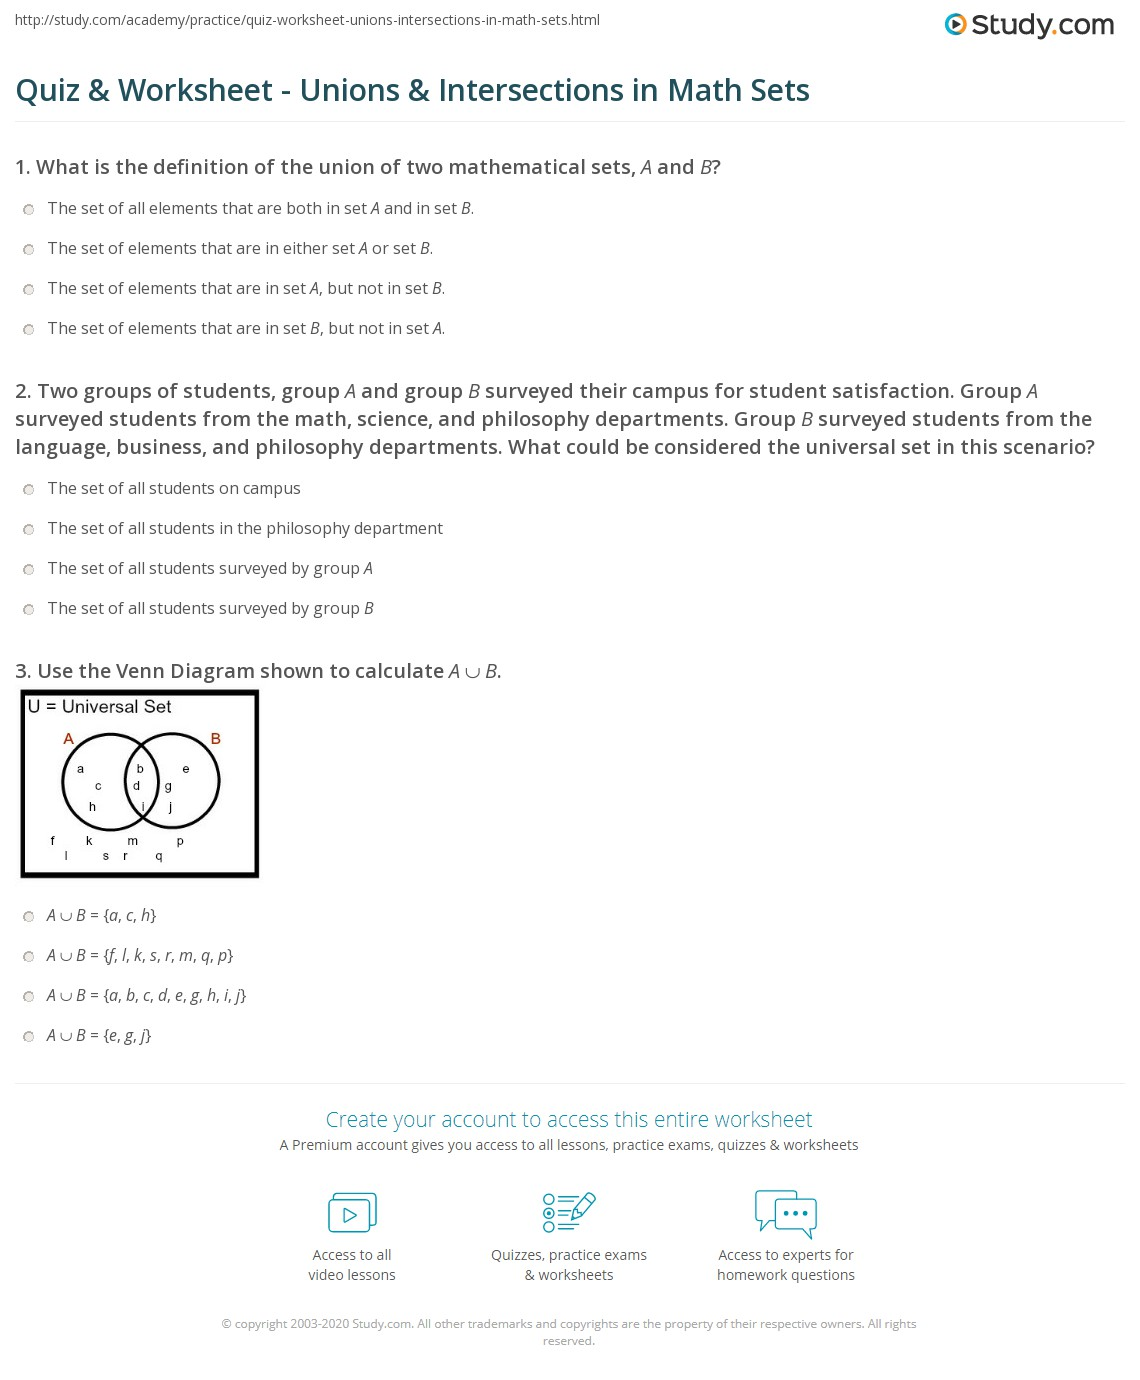 Quiz worksheet unions intersections in math sets study 1 two groups of students group a and group b surveyed their campus for student satisfaction group a surveyed students from the math science pooptronica